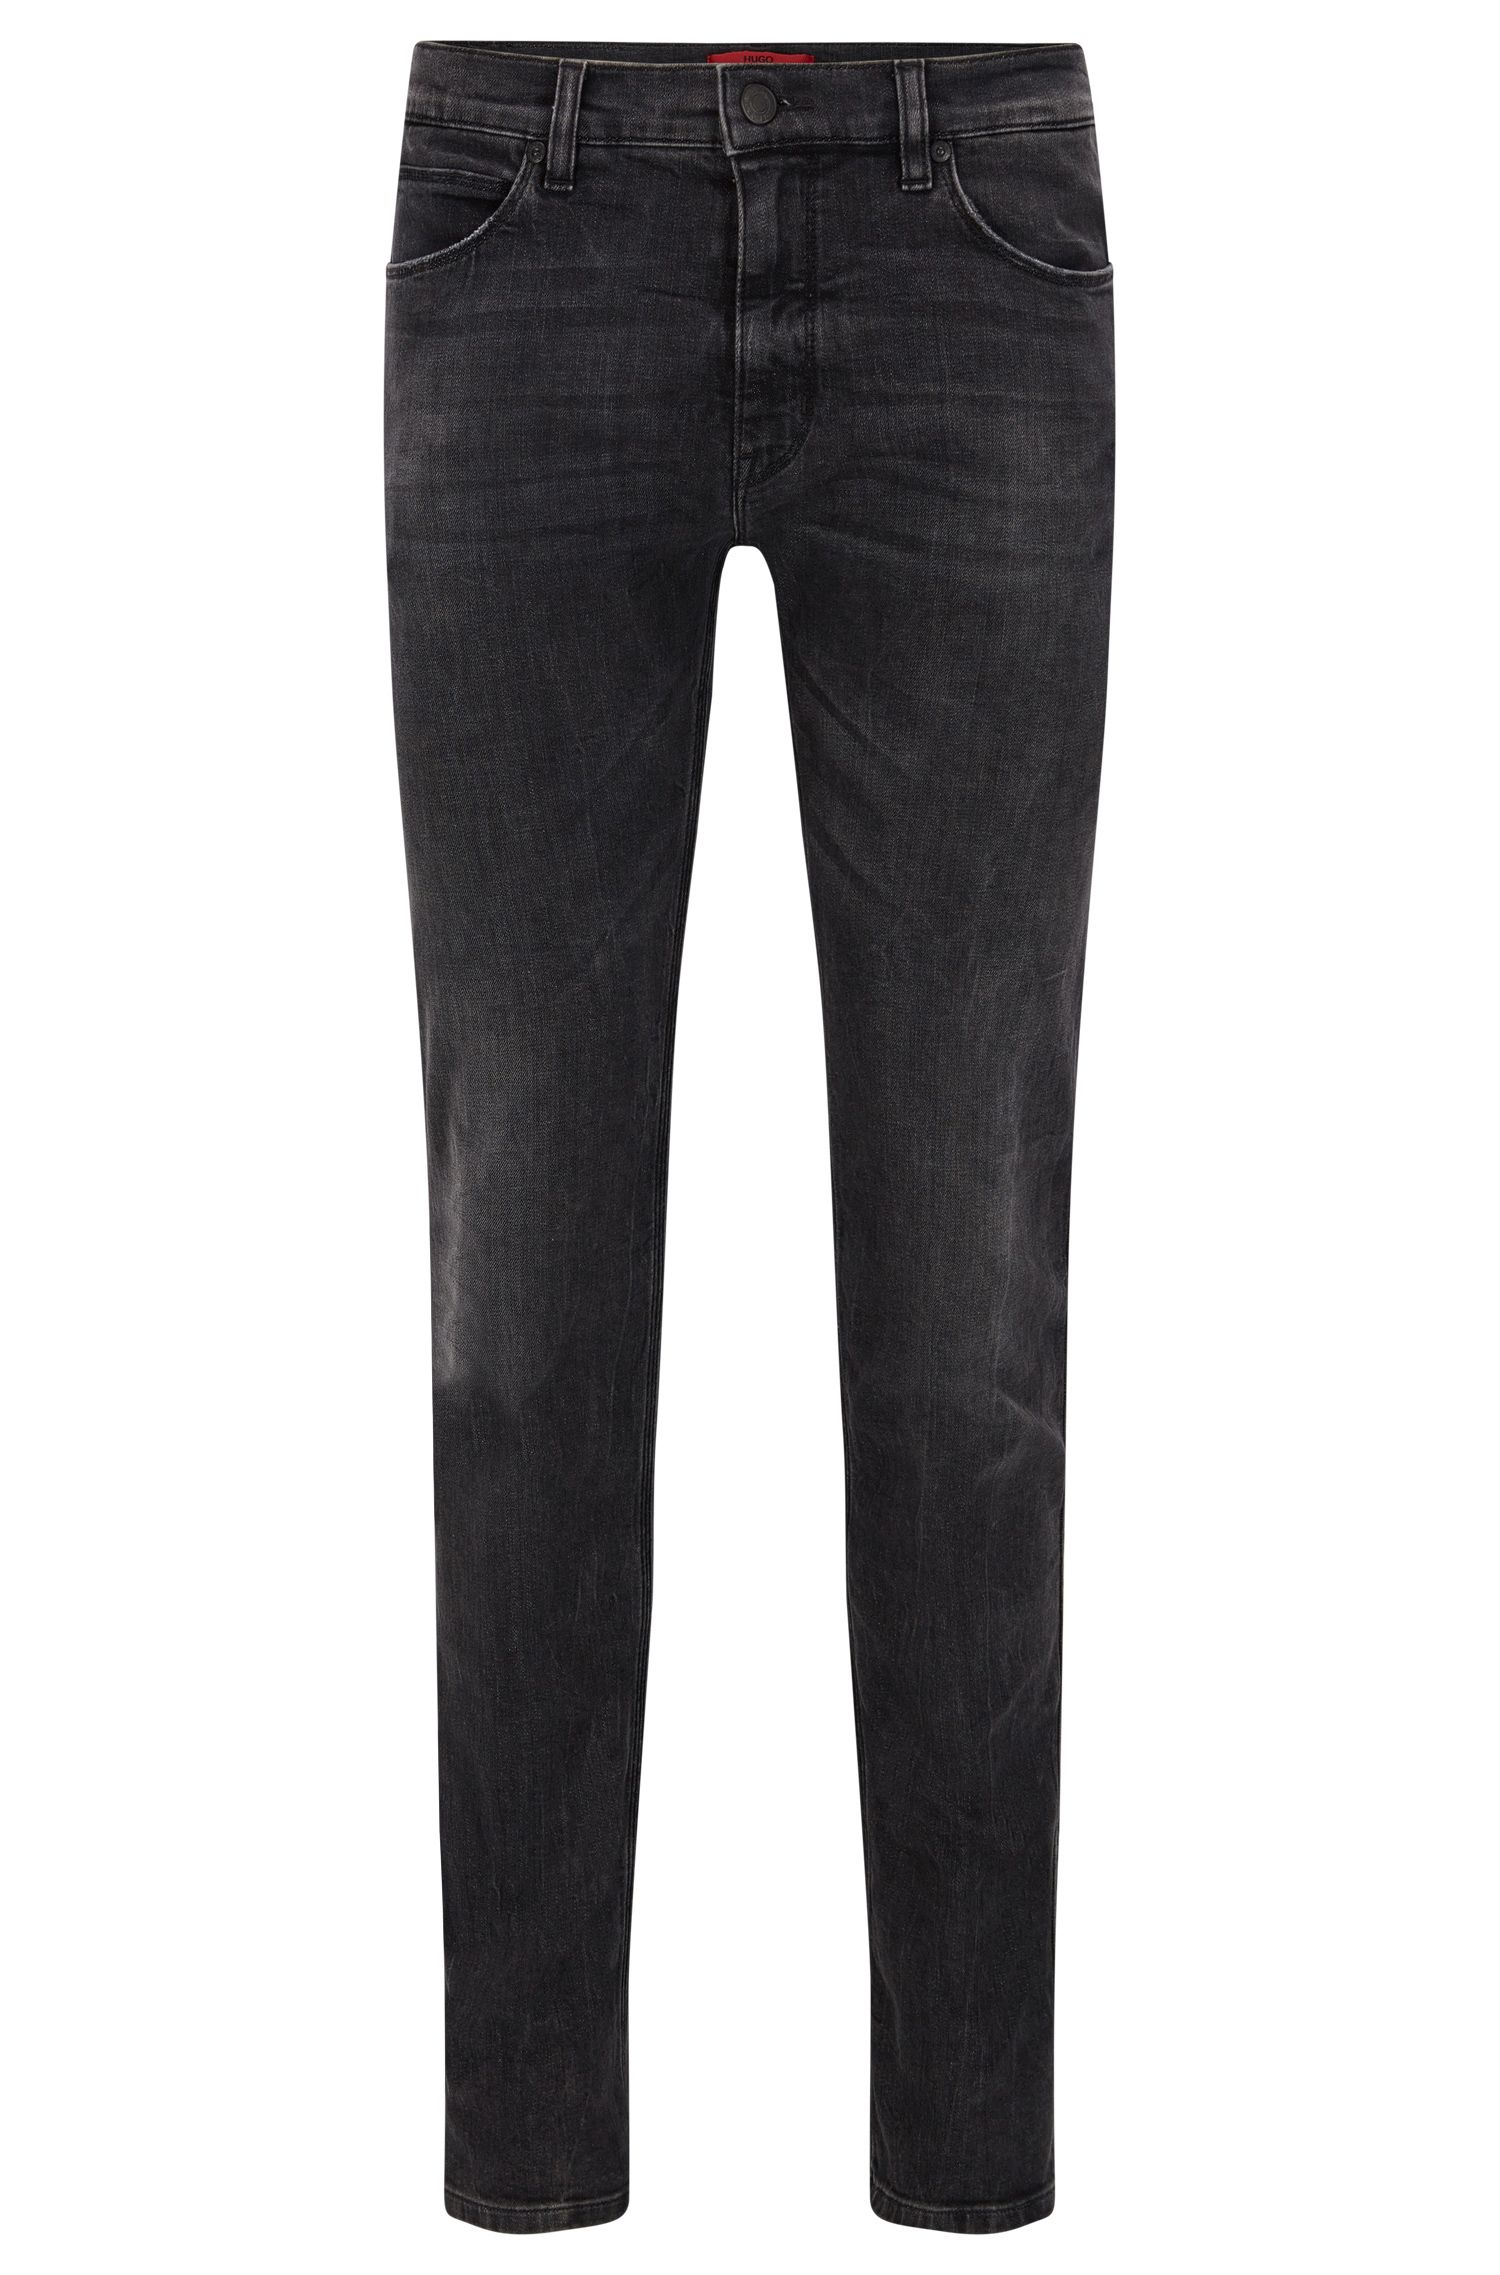 Jeans Slim Fit à effet stone-washed